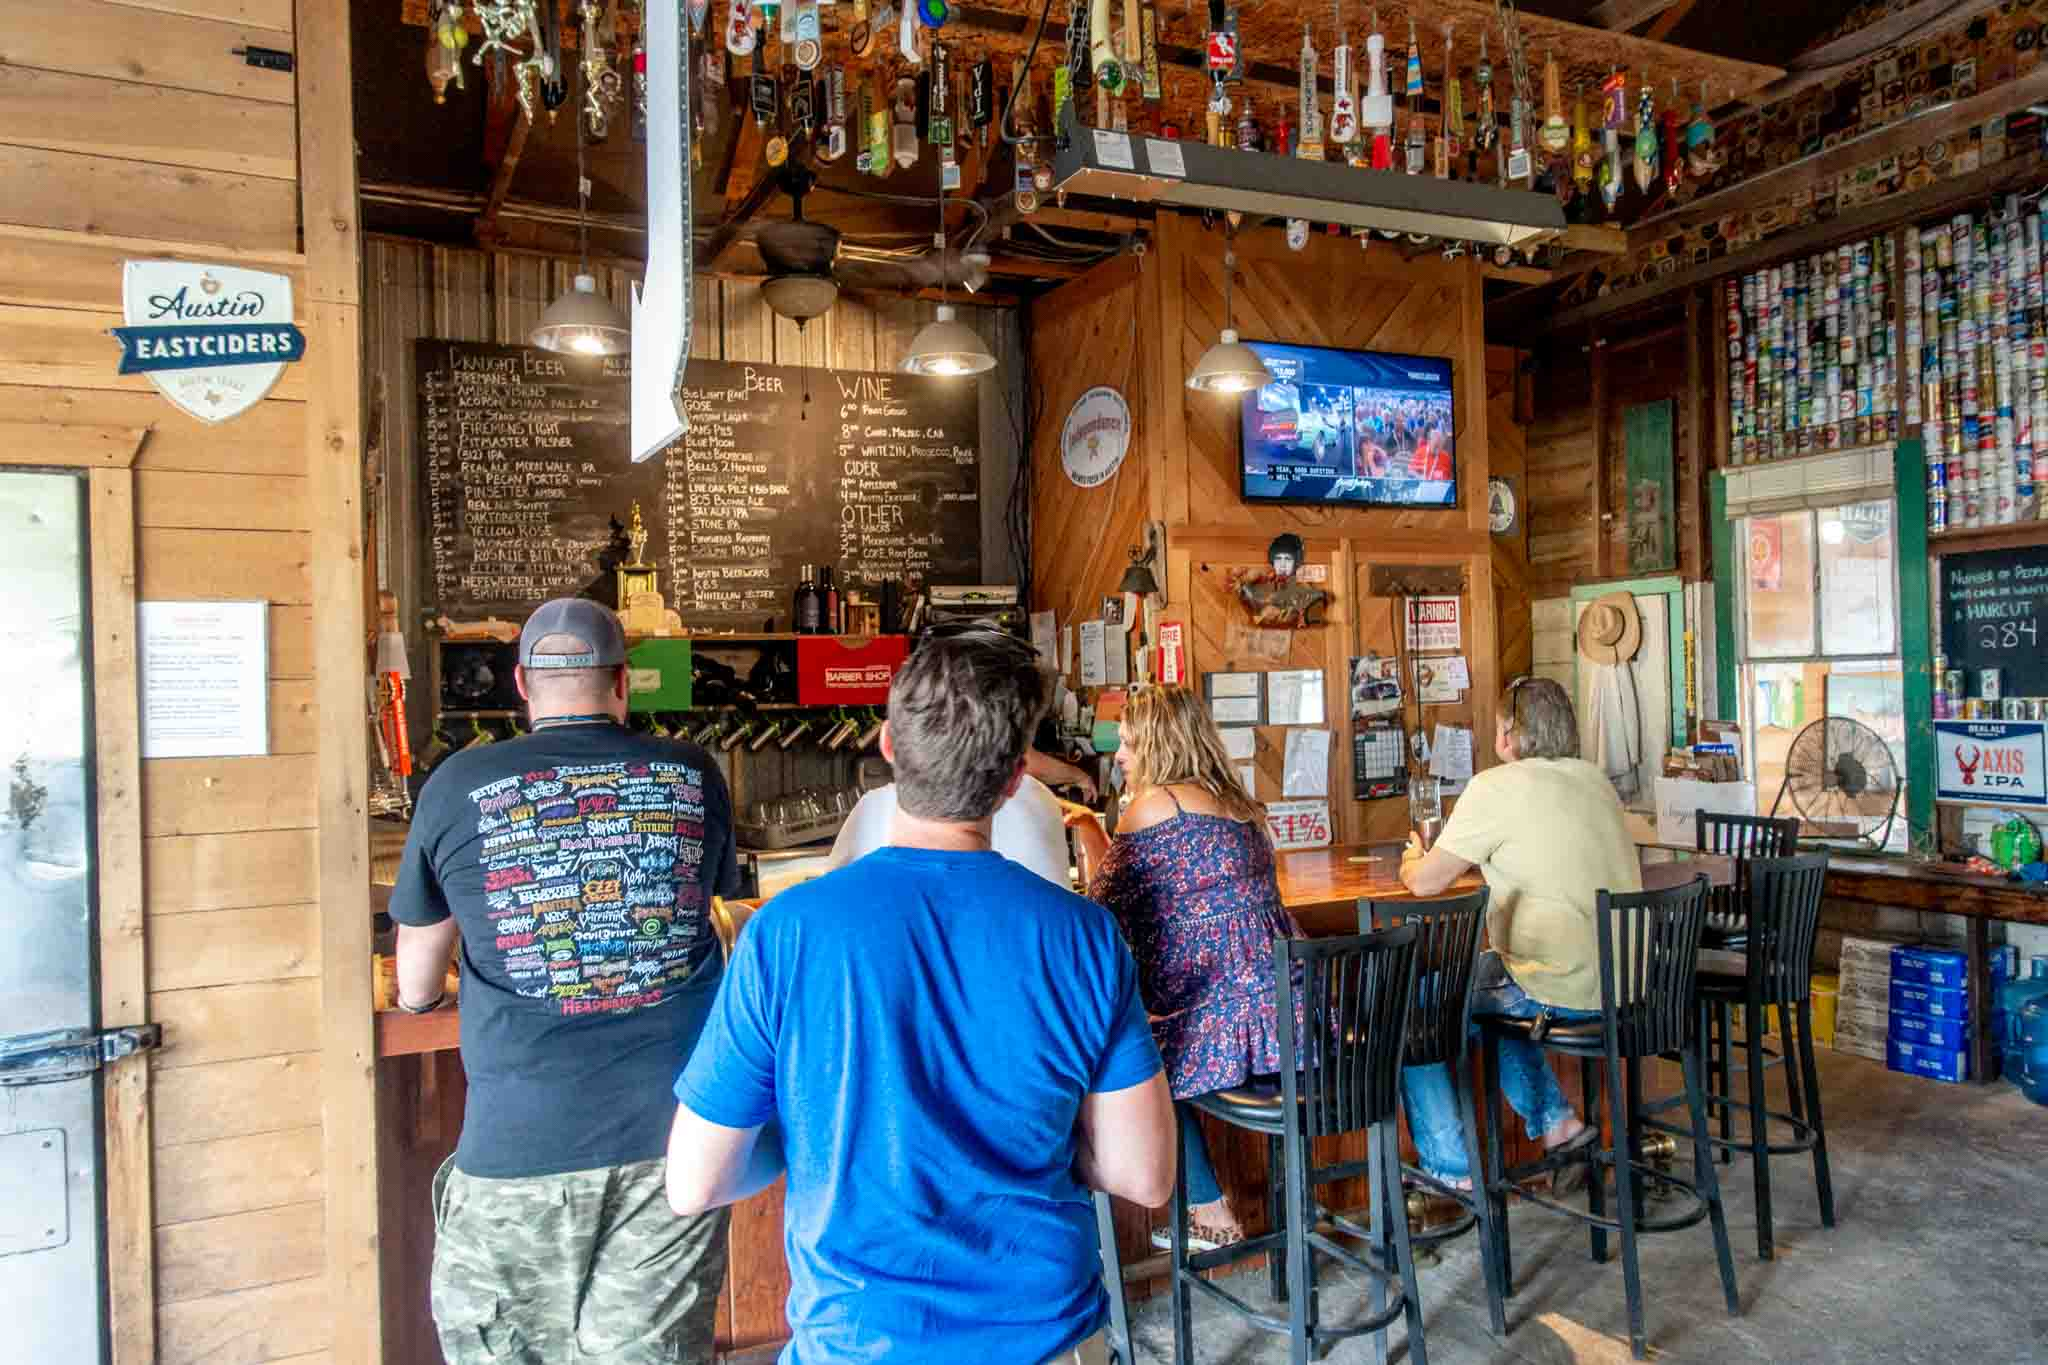 People at a bar ordering drinks and watching TV